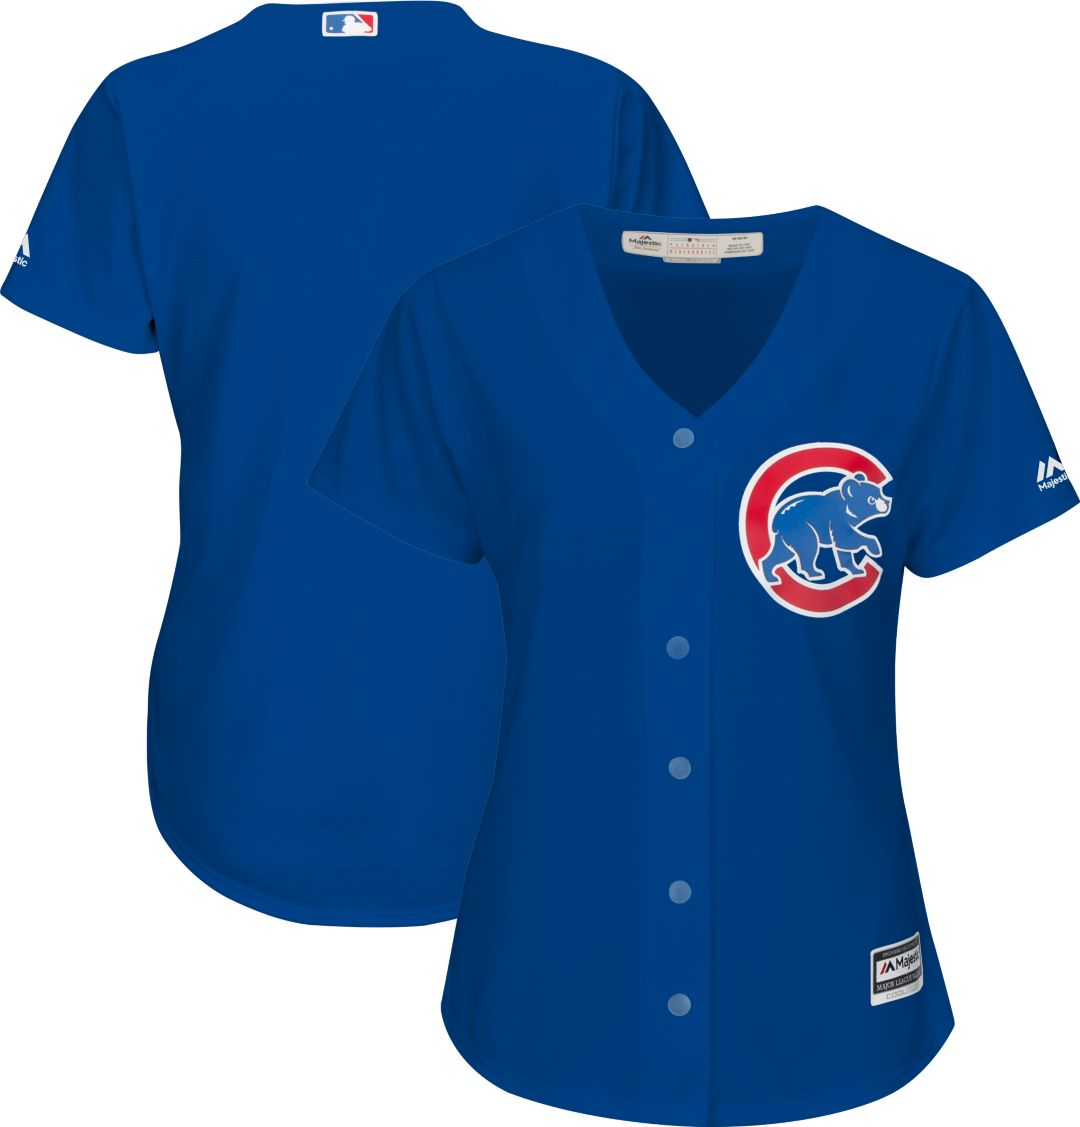 reputable site 1463d ab666 Majestic Women's Replica Chicago Cubs Cool Base Alternate Royal Jersey